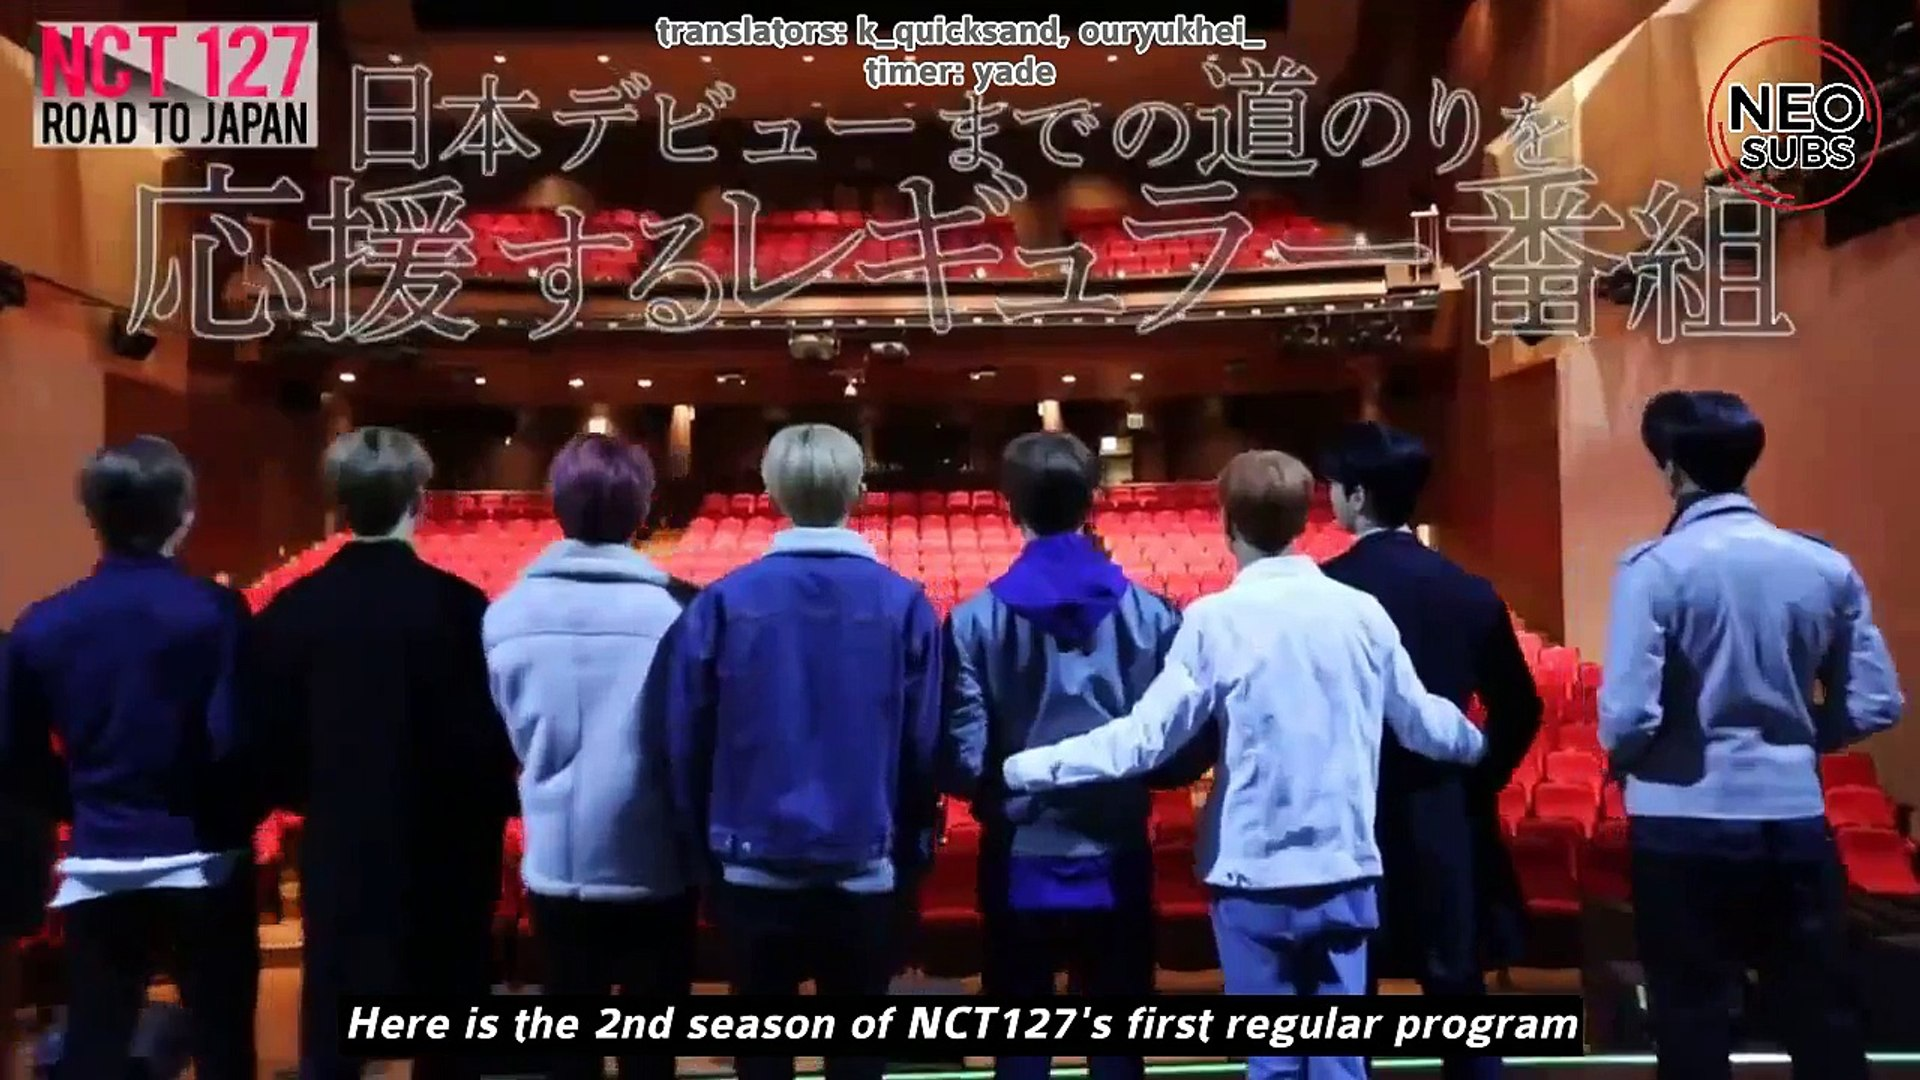 [NEOSUBS] 180318 NCT 127 Road To Japan #7